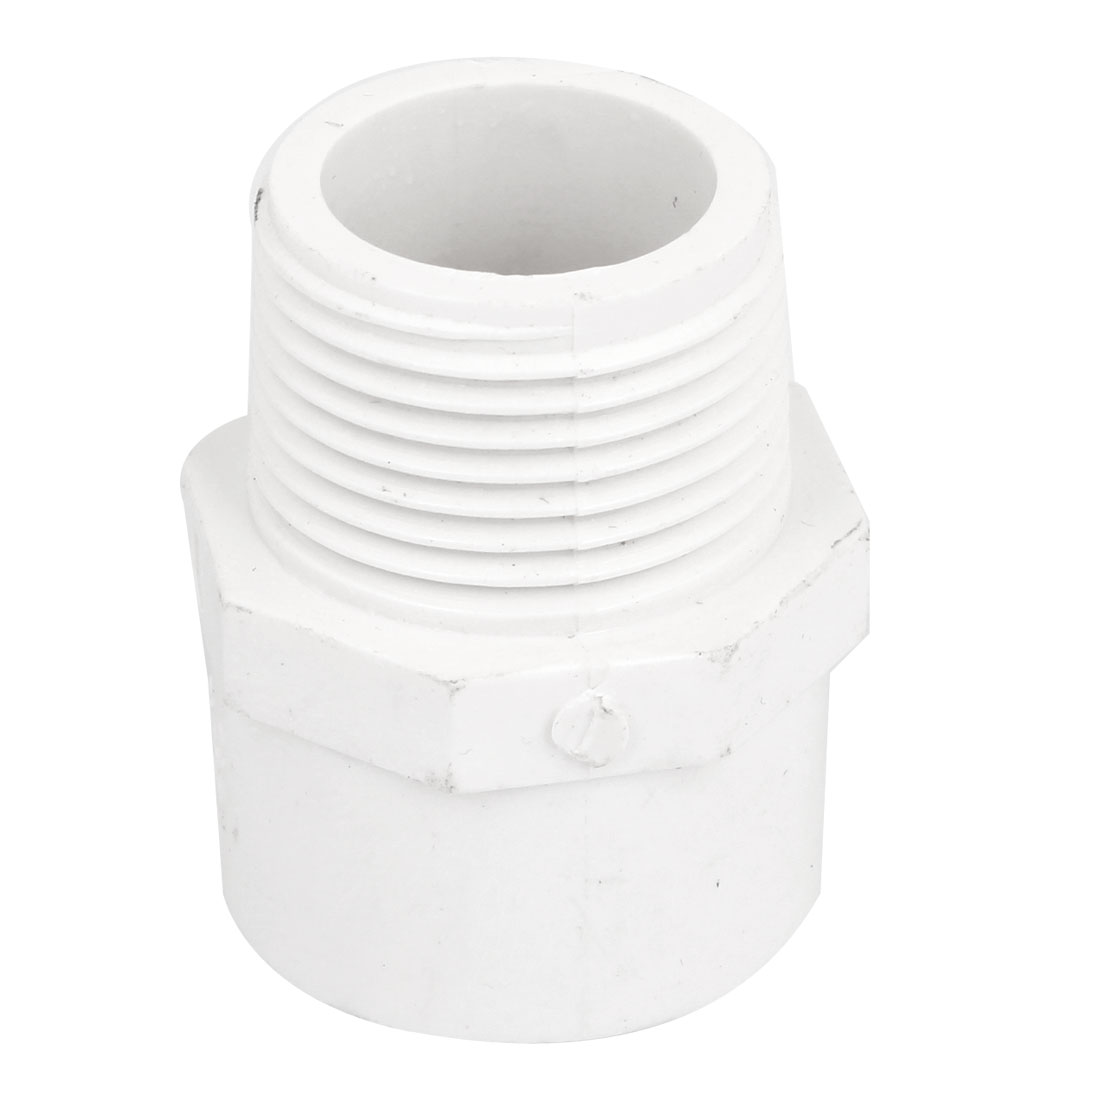 32mm Male Threaded PVC Straight Water Hose Piping Connectors Coupler White